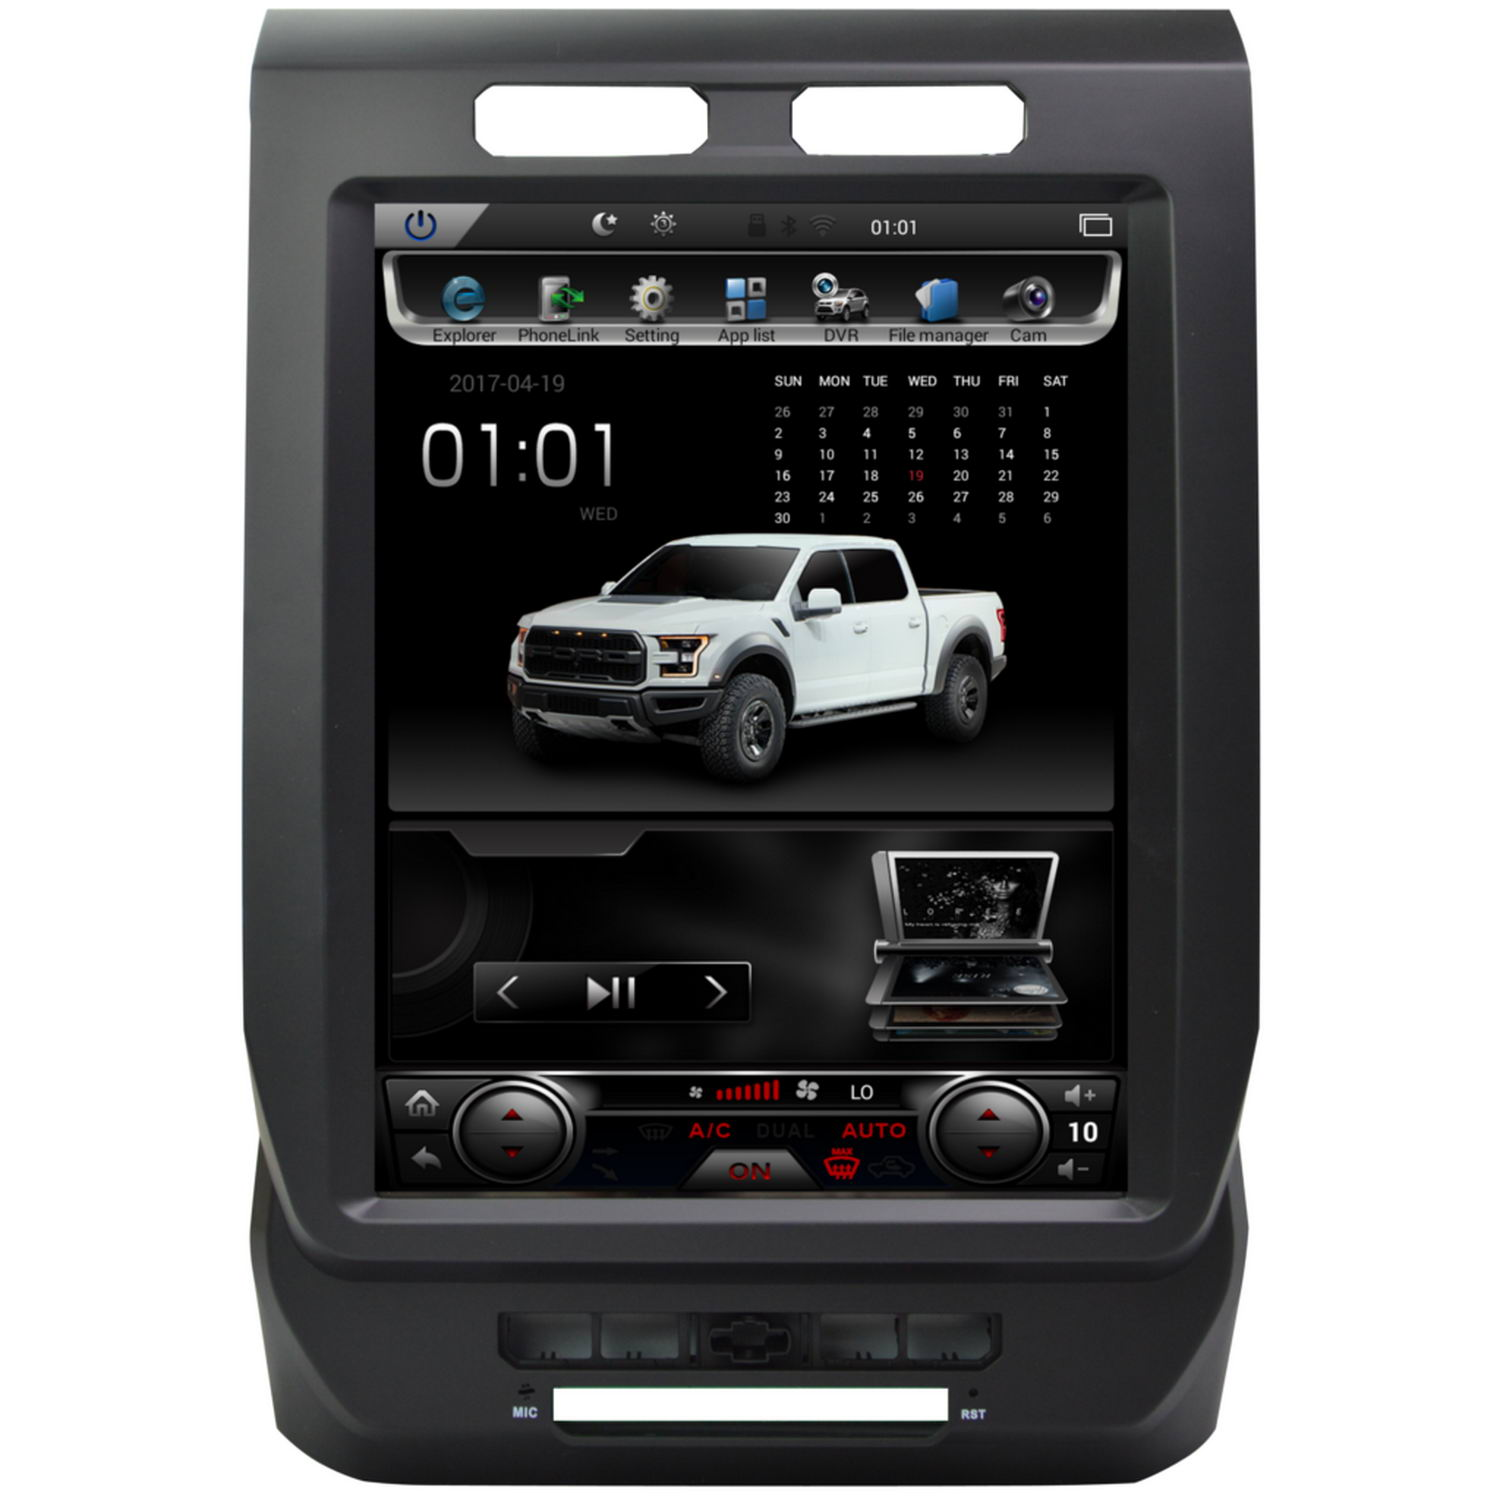 T Style Radio For Ford 2015 18 F 150 together with Smartwatch H365 Black in addition Citroen together with Viewtopic besides Ford F150 X009 Fd1. on touch screen radio with remote